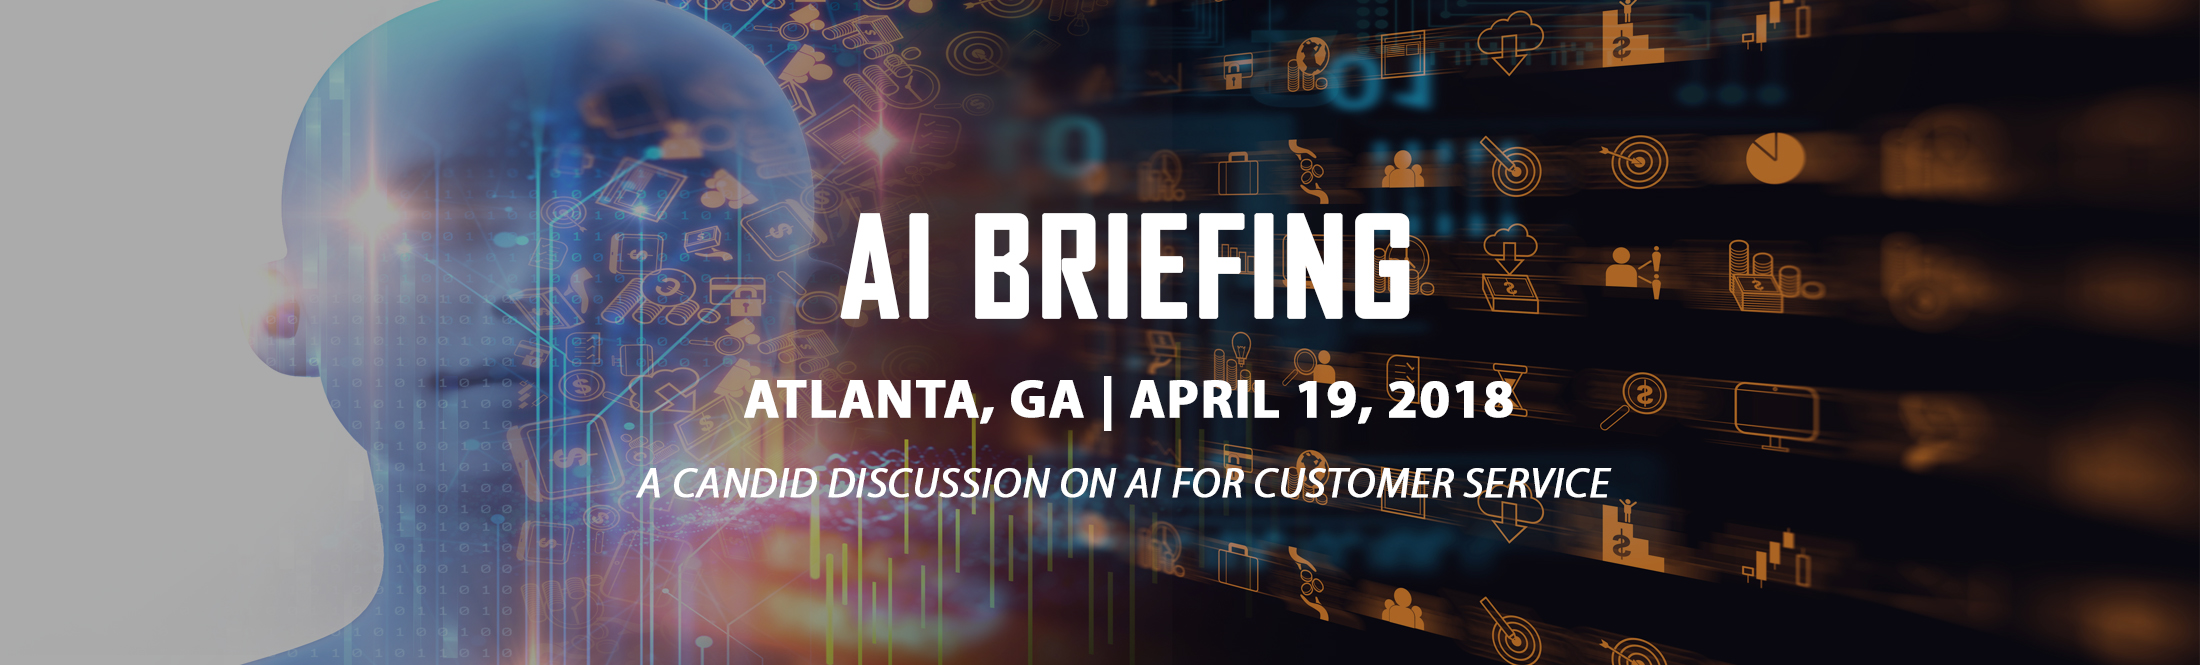 AI Briefing - Atlanta